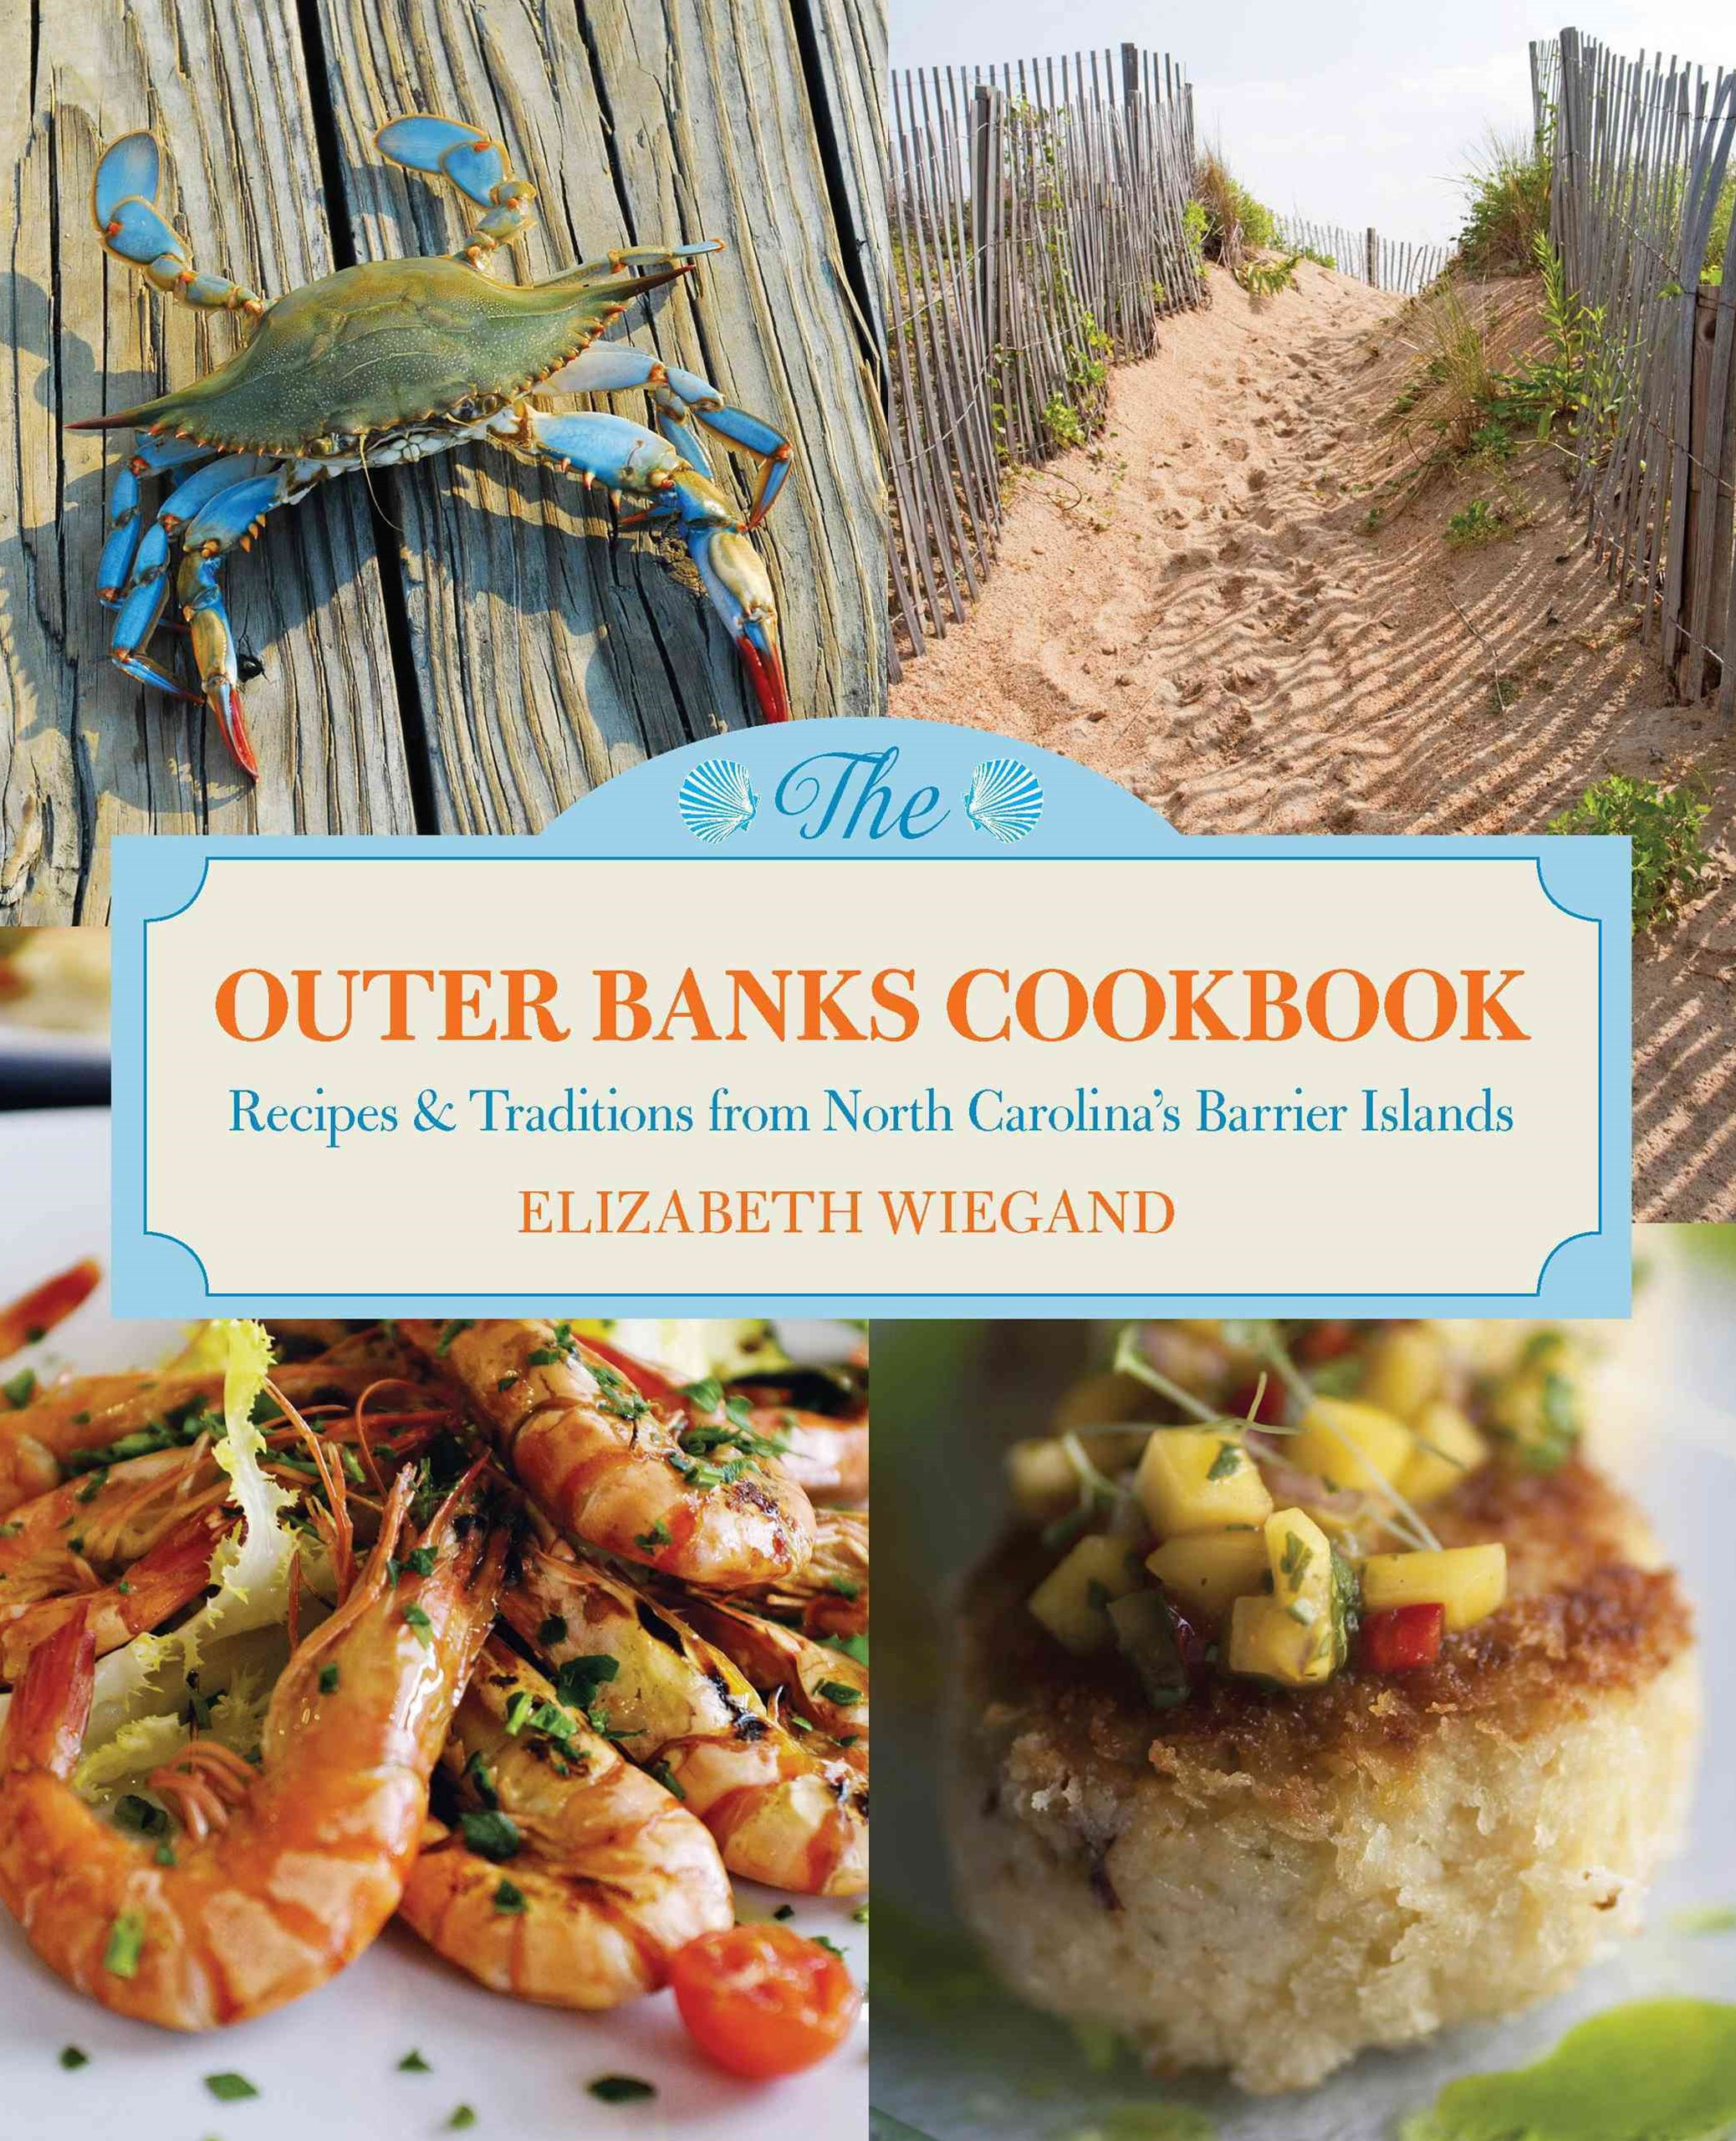 Outer Banks Cookbook